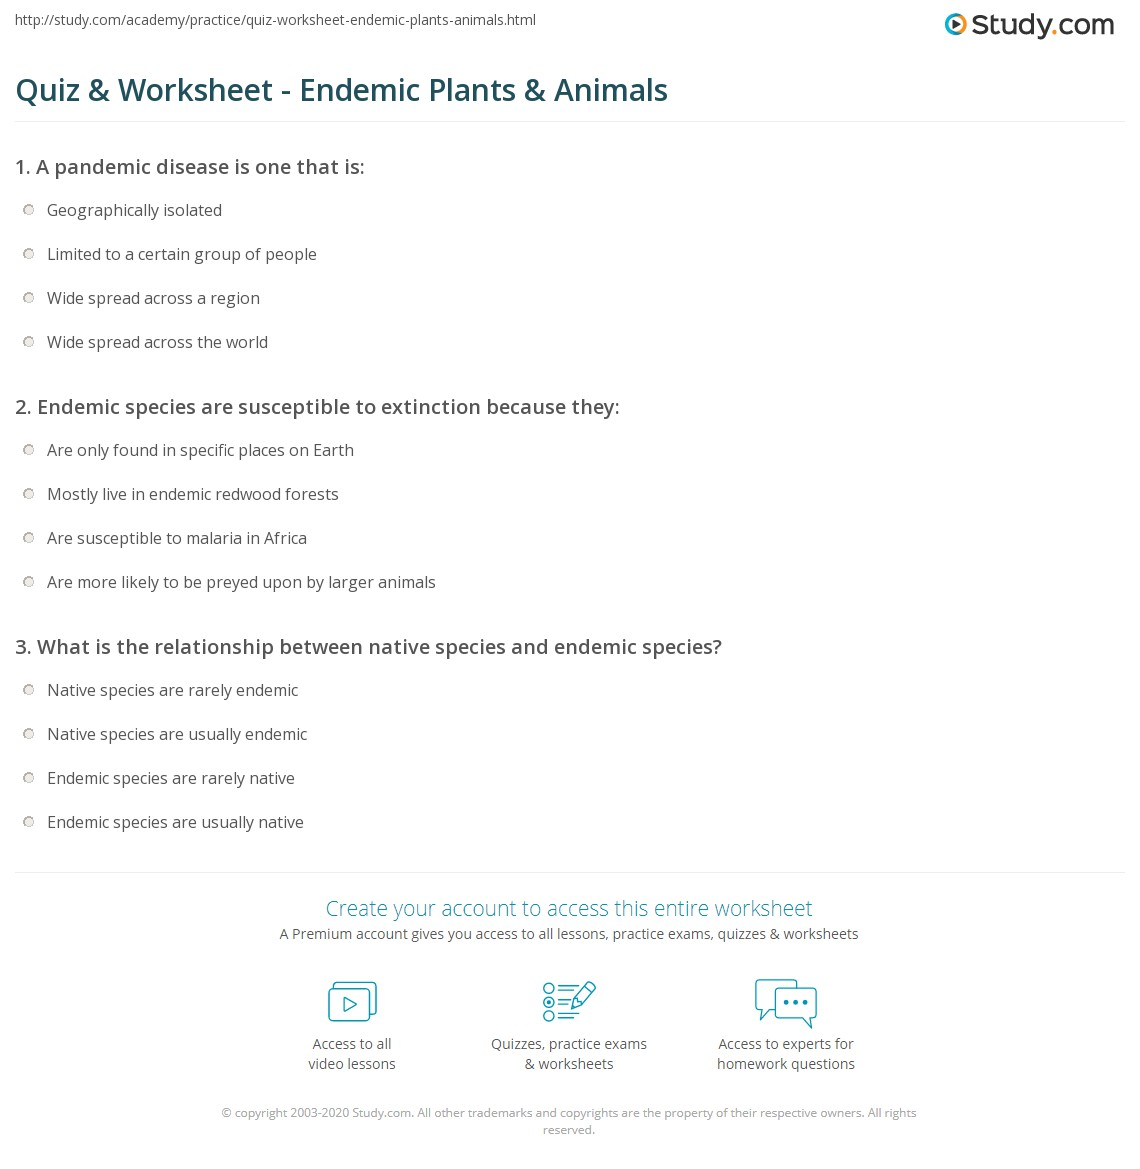 Exceptional Print Endemic Plants And Animals: Definition U0026 Examples Worksheet